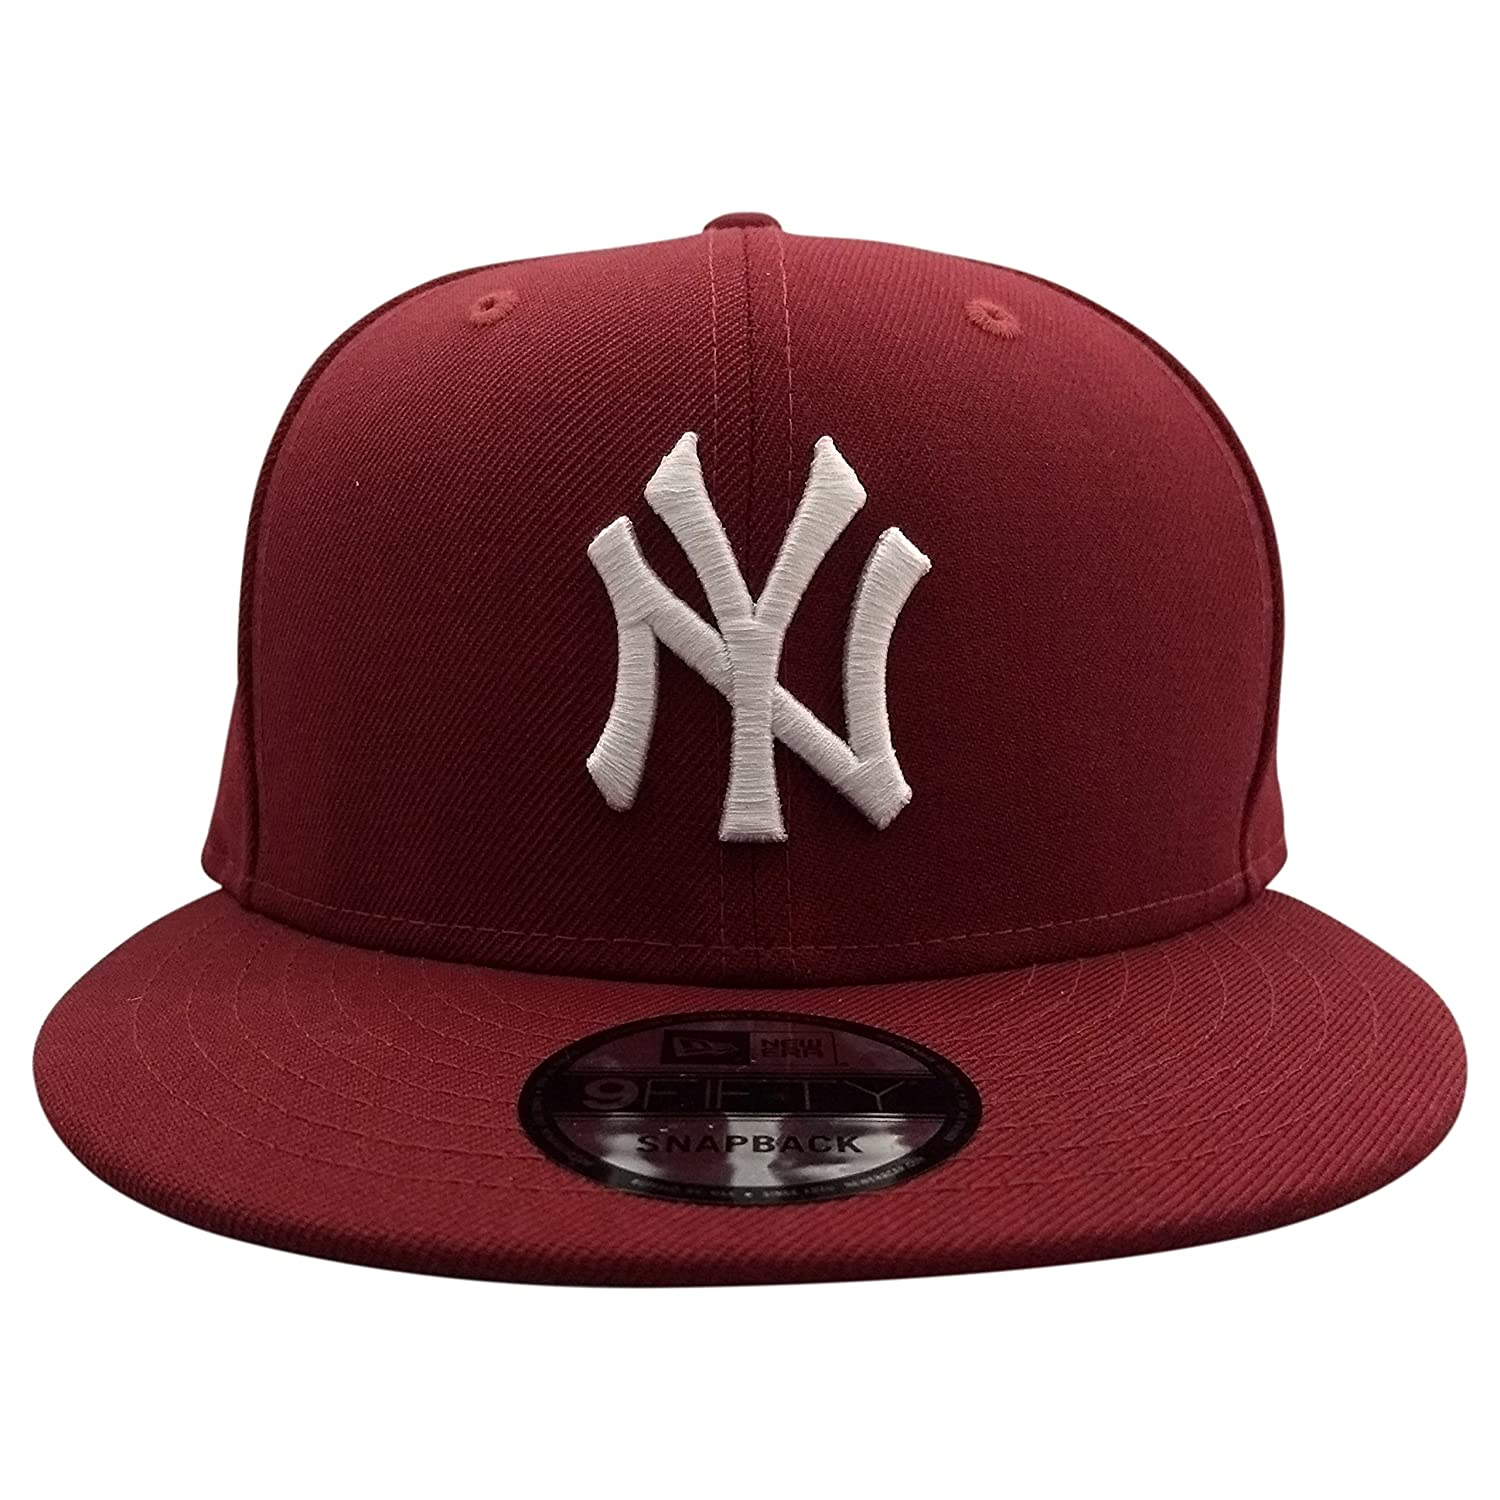 e0a8aeeb434 Amazon.com  New Era New York Yankees MLB Maroon 9FIFTY Snapback Cap   Clothing